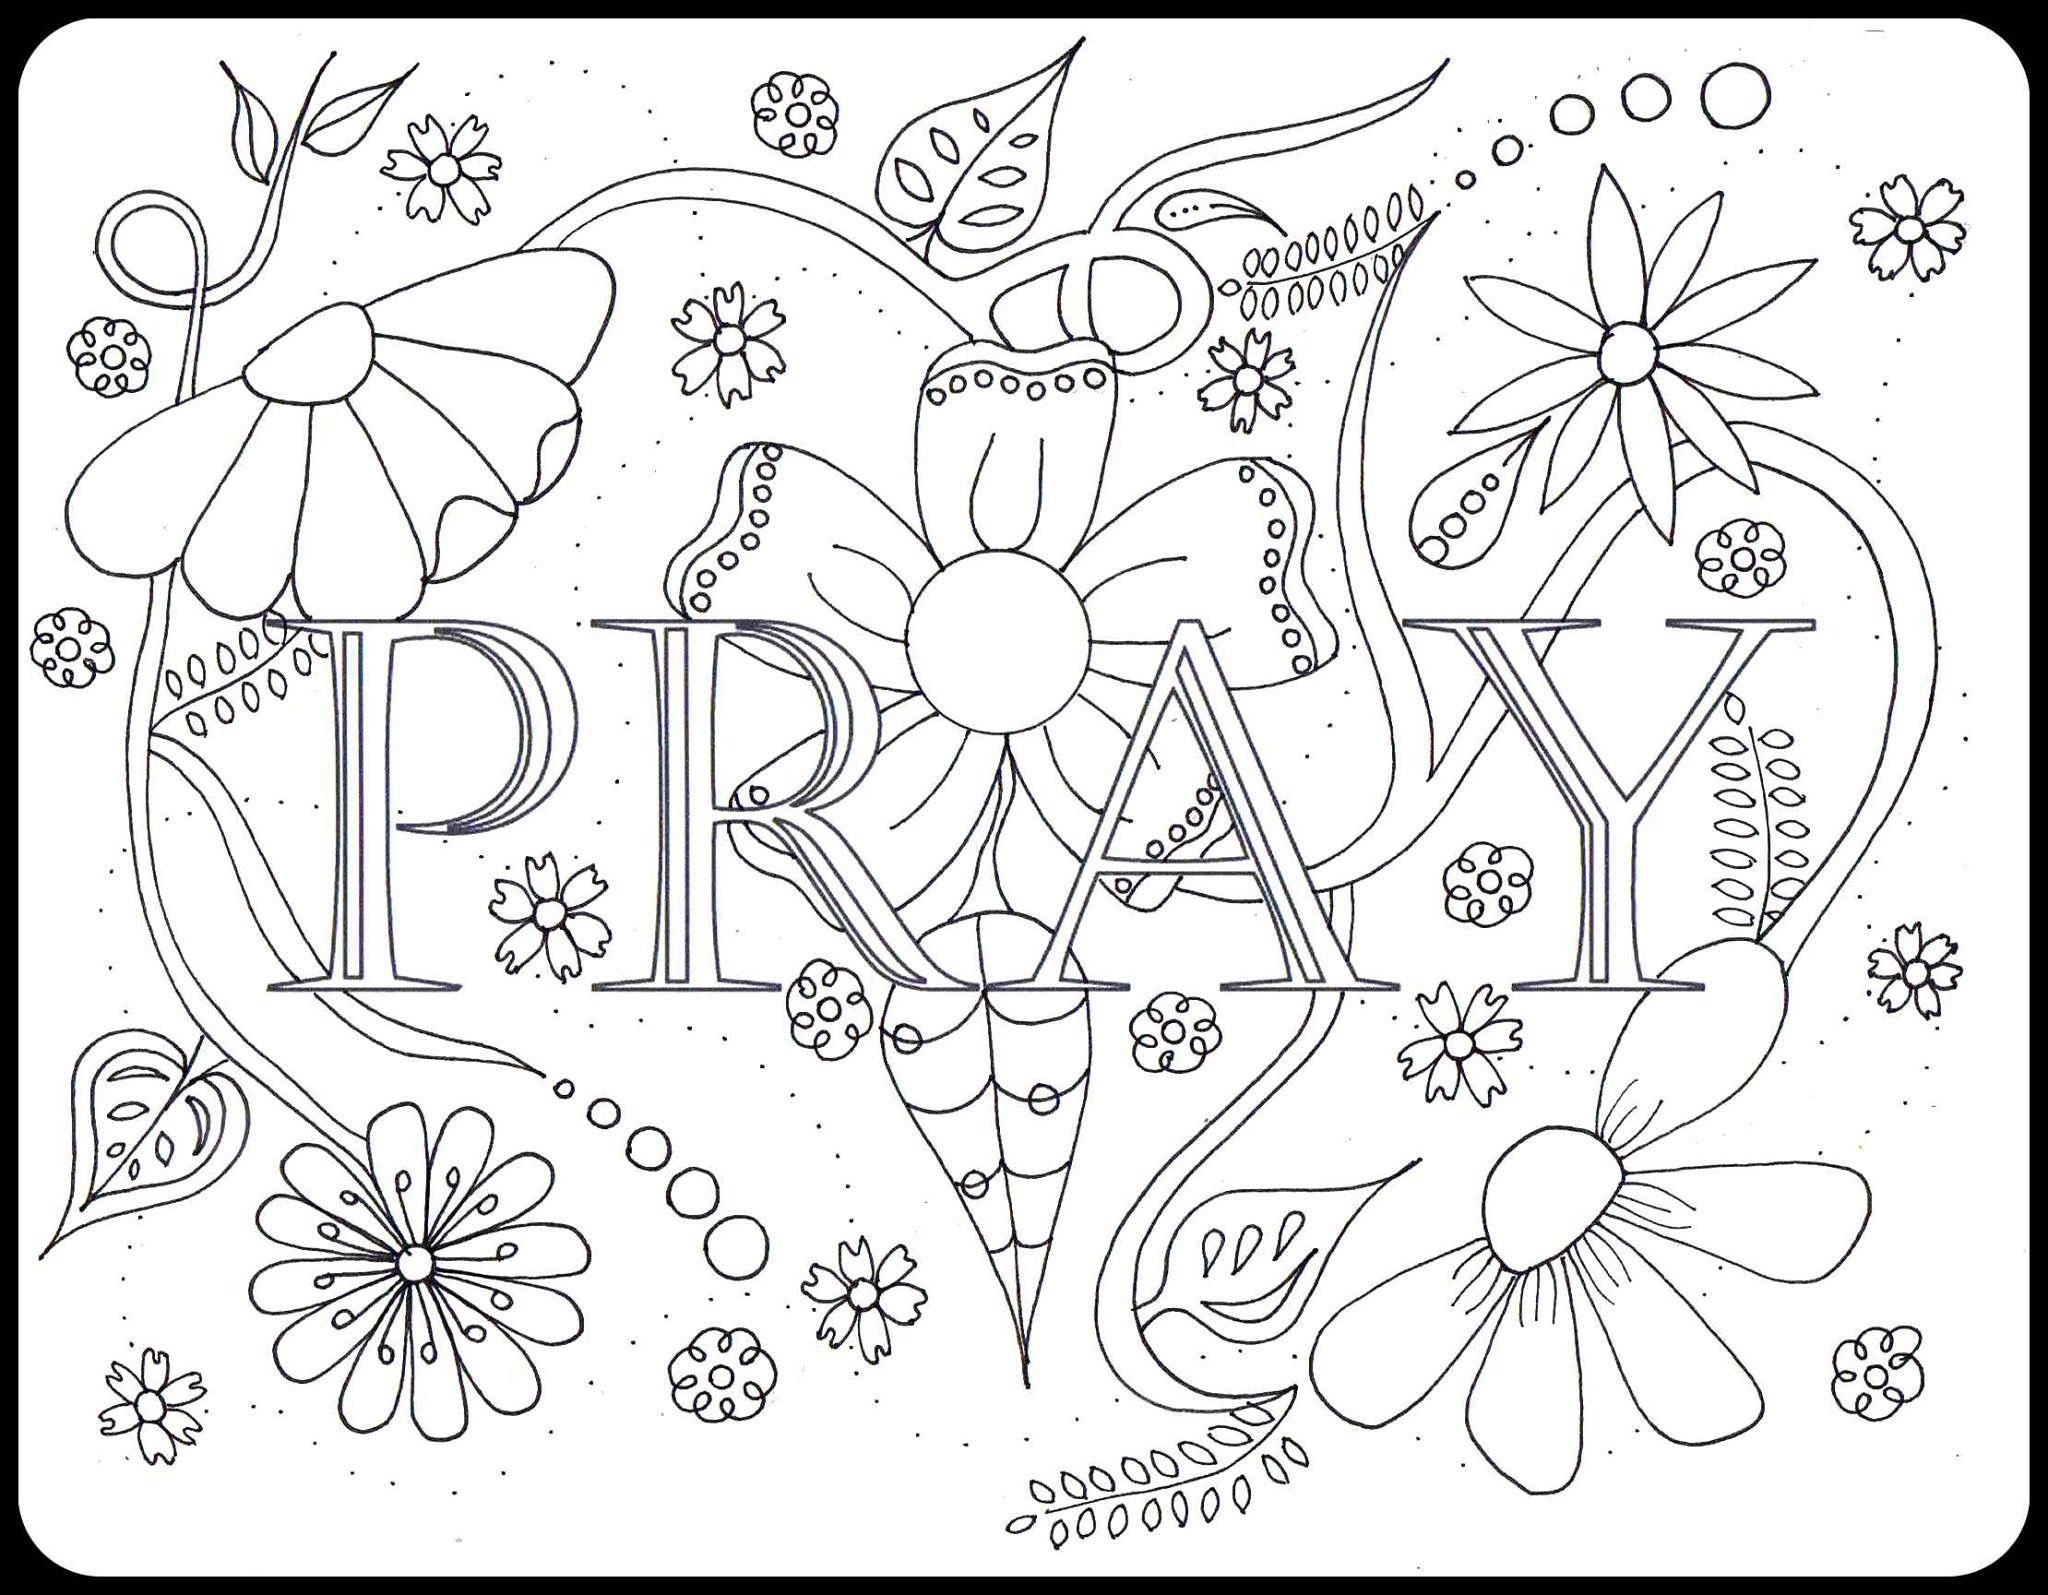 18 Free Colouring Print Outs Lds Coloring Pages Bible Coloring Pages Coloring Pages